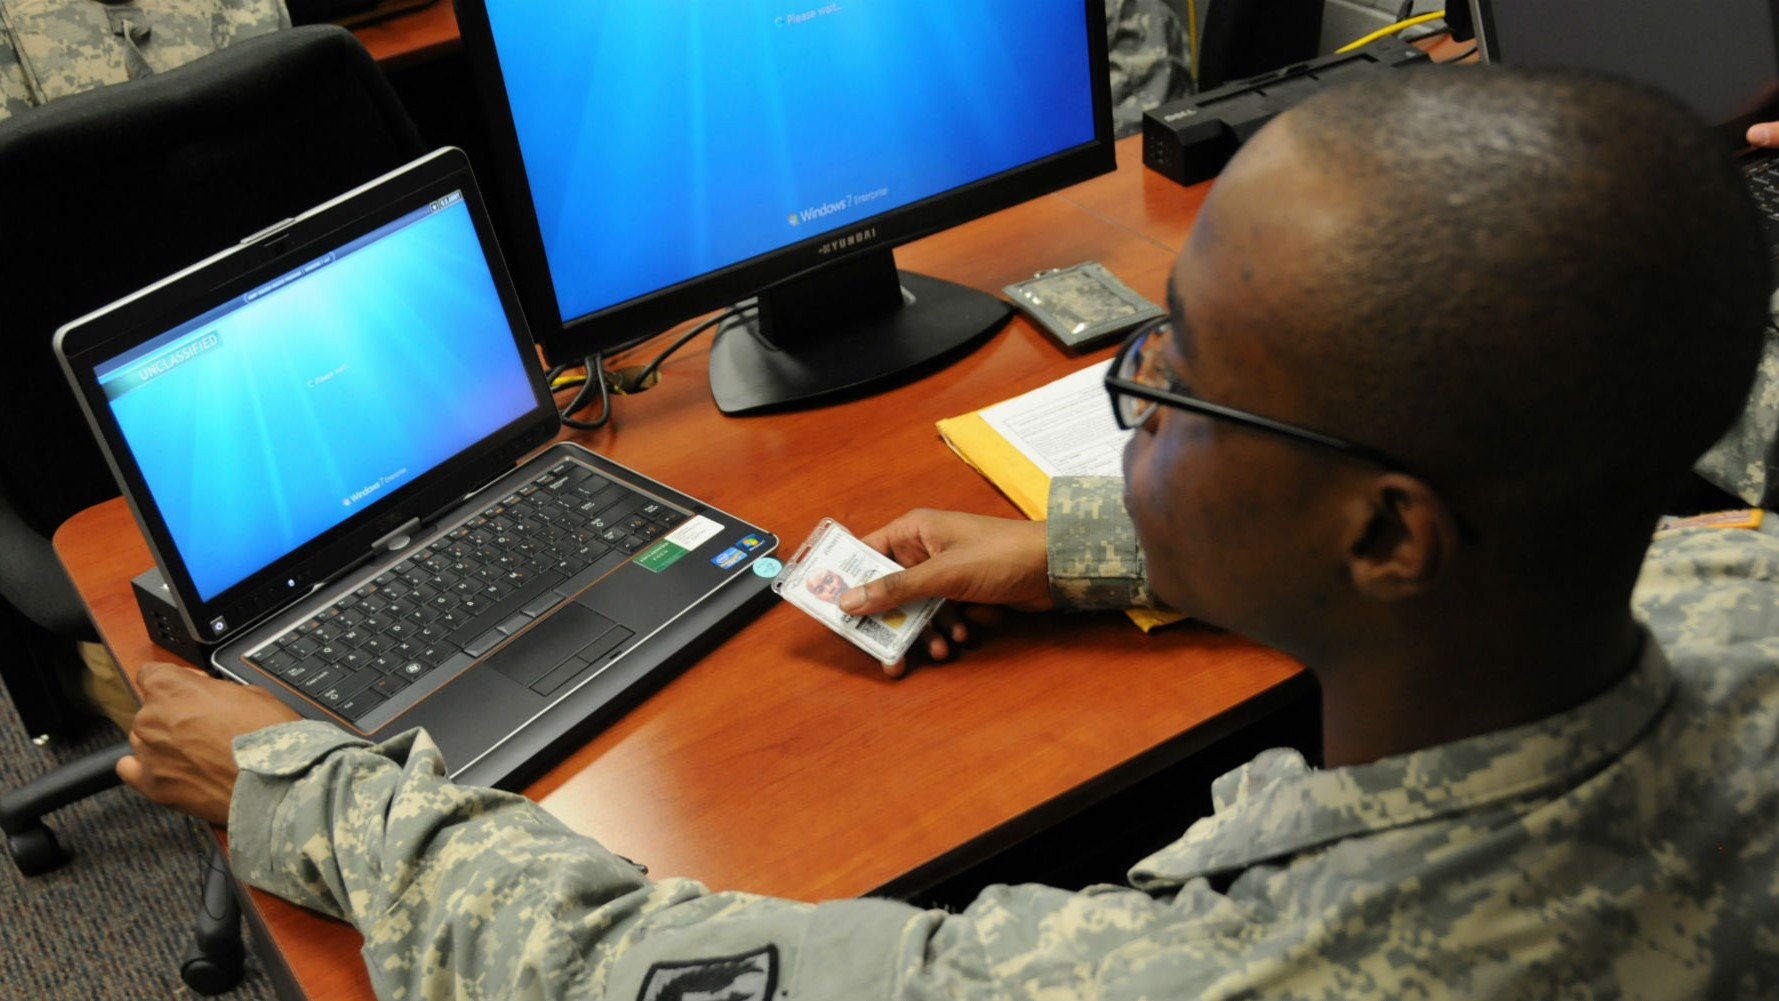 Researcher Finds Several 'Serious' Vulnerabilities in US Military Websites